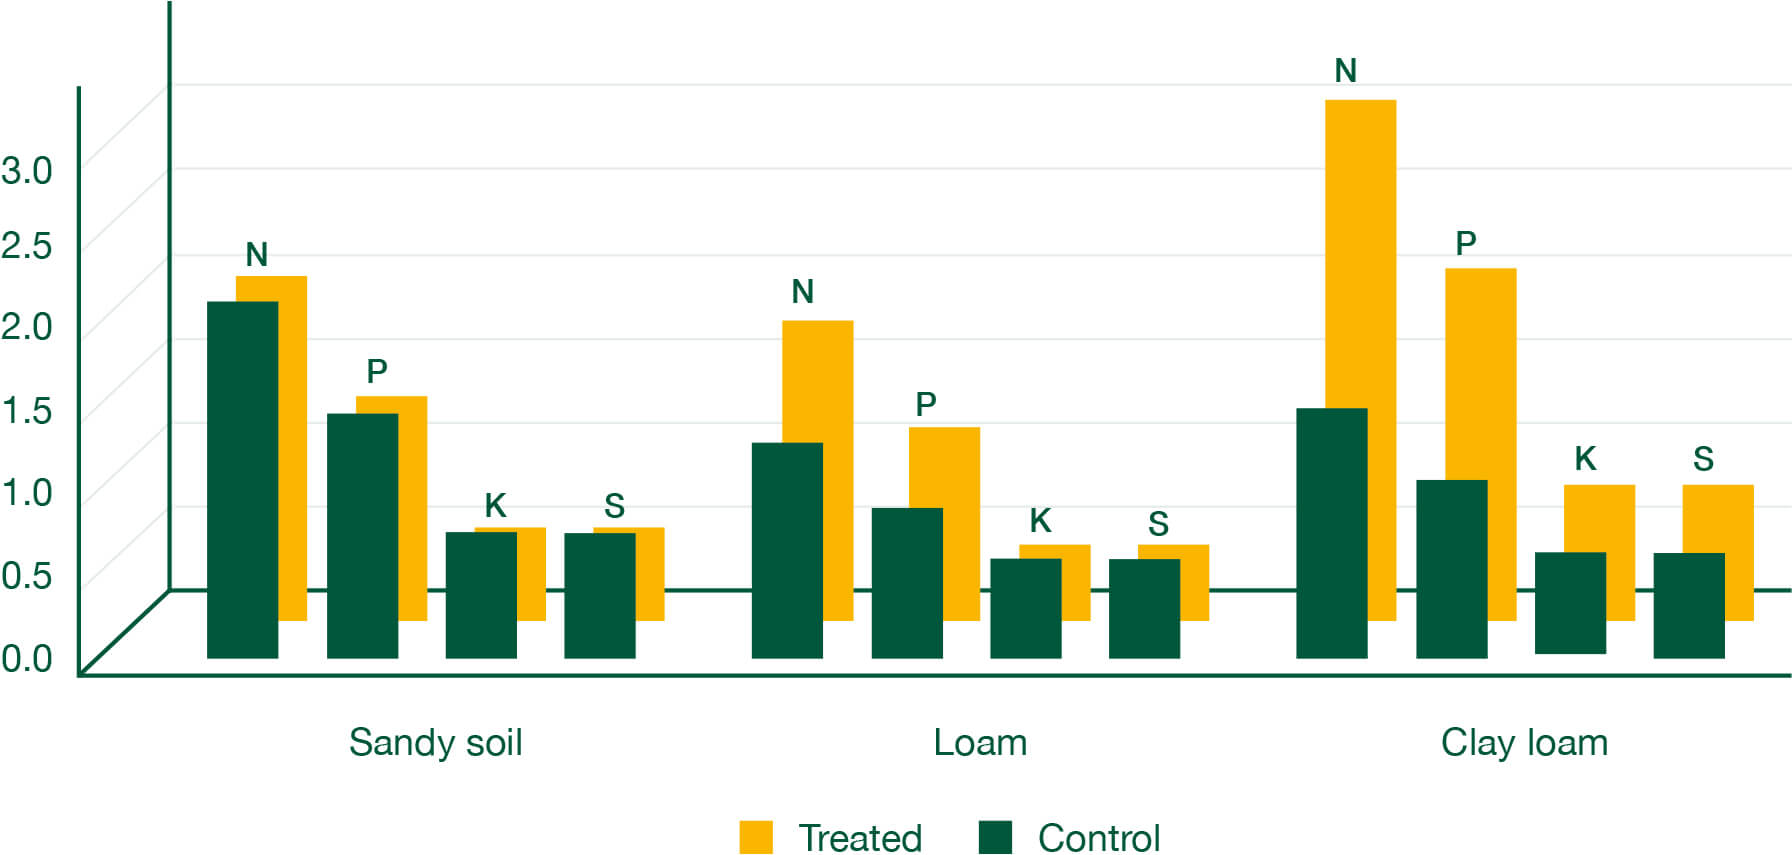 Graph that displays nutrient increases in biomass across soil types (T/ha). Results confirm treated clay loam soil performs far better than untreated even more so than sandy or loam soil